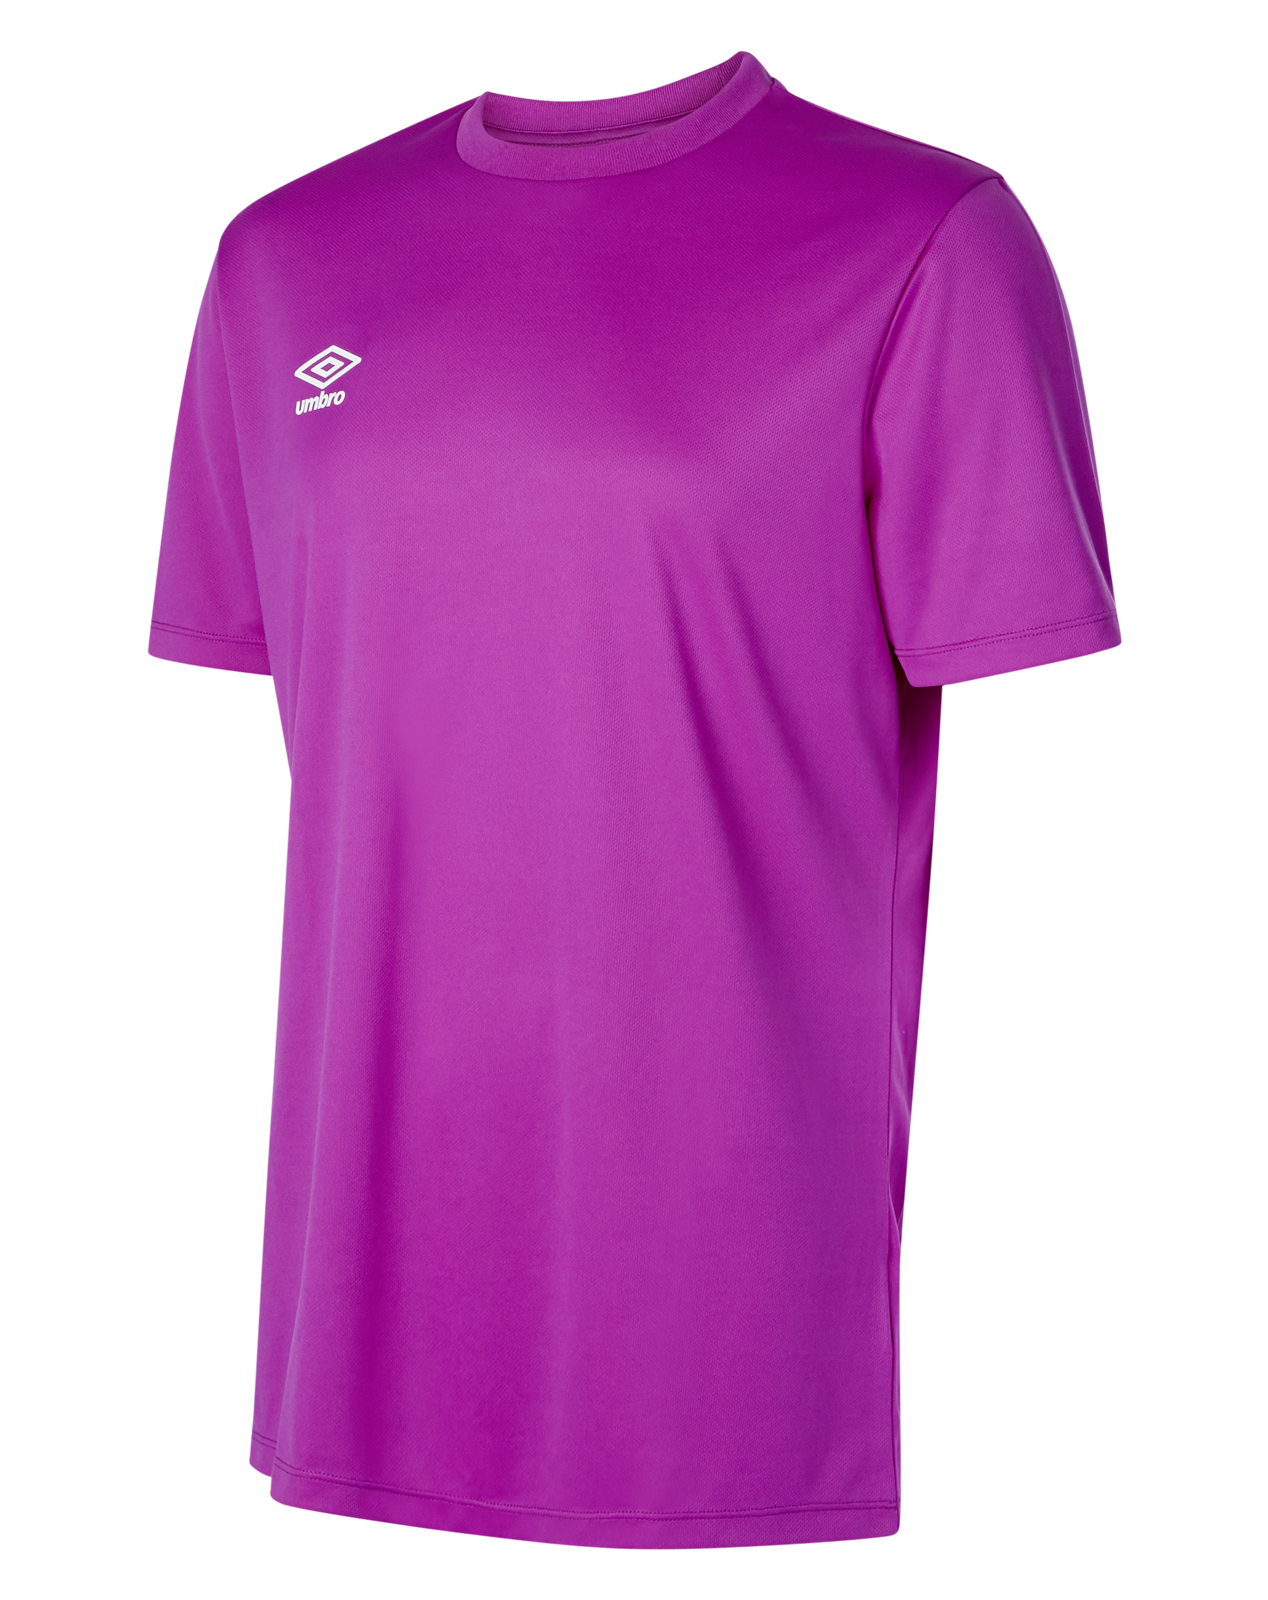 Short sleeve Umbro Club jersey in purple cactus with white Umbro logo